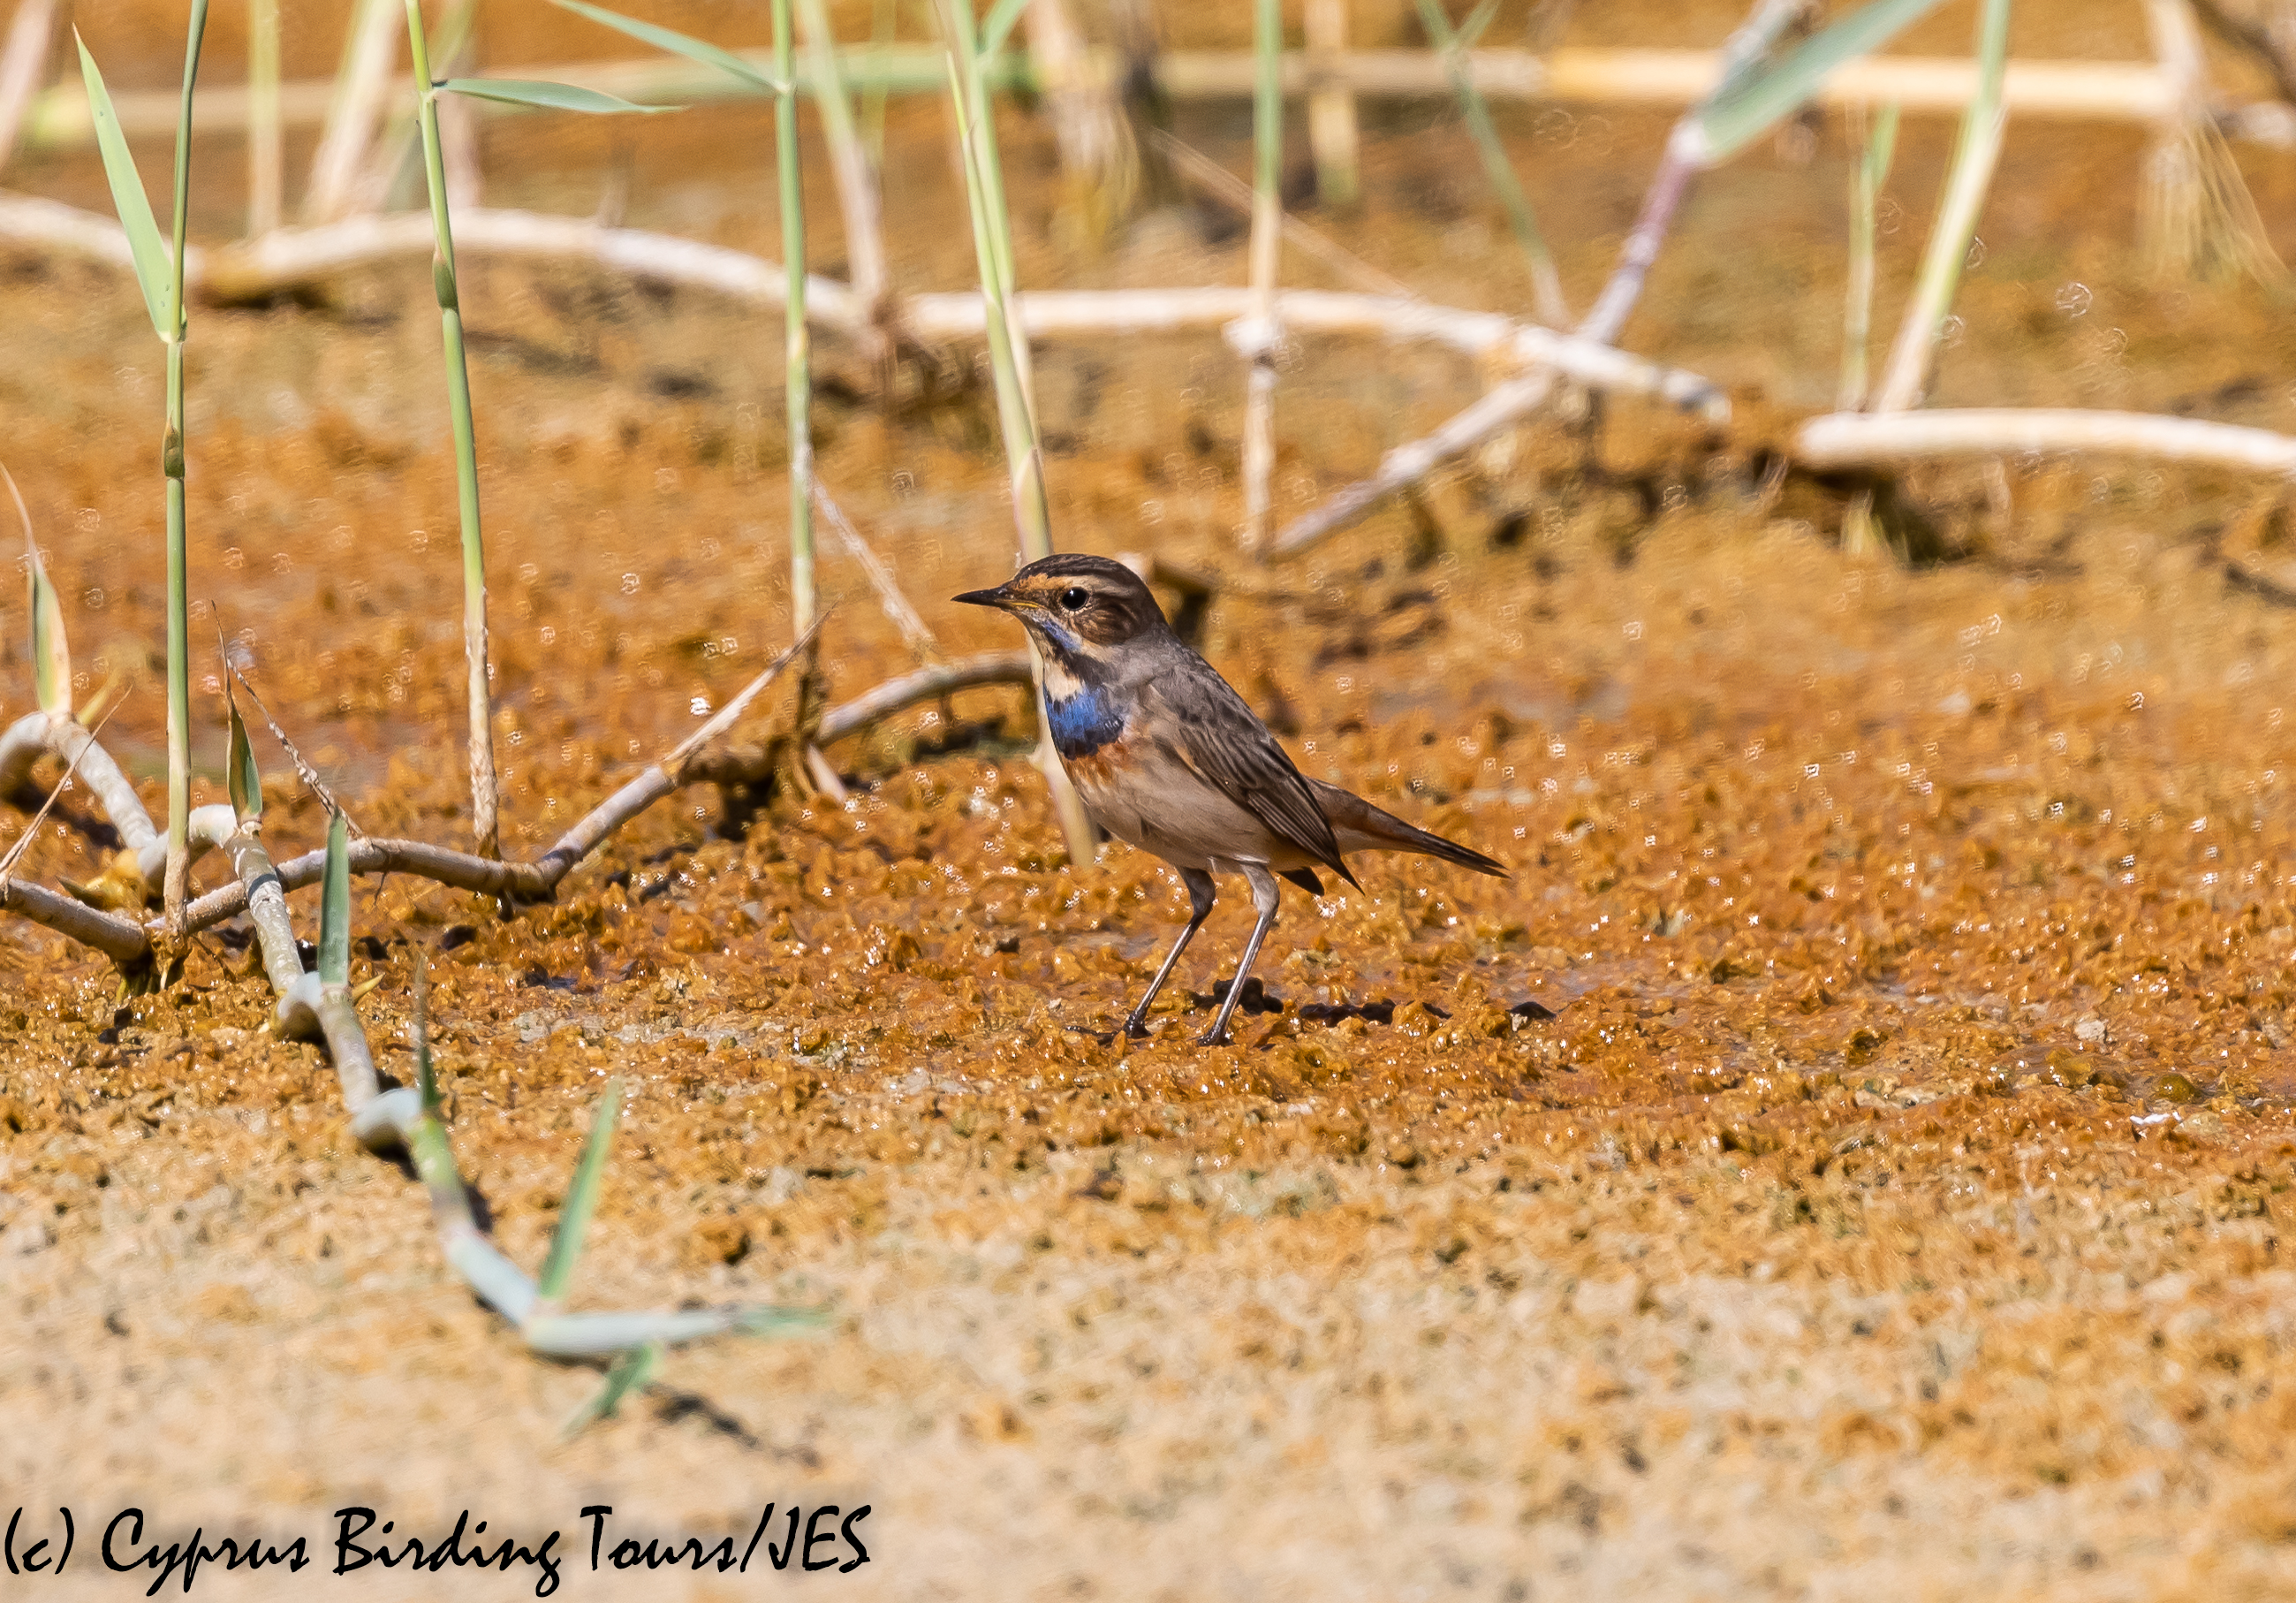 Bluethroat, Akrotiri Salt Lake 14th October 2018 (c) Cyprus Birding Tours